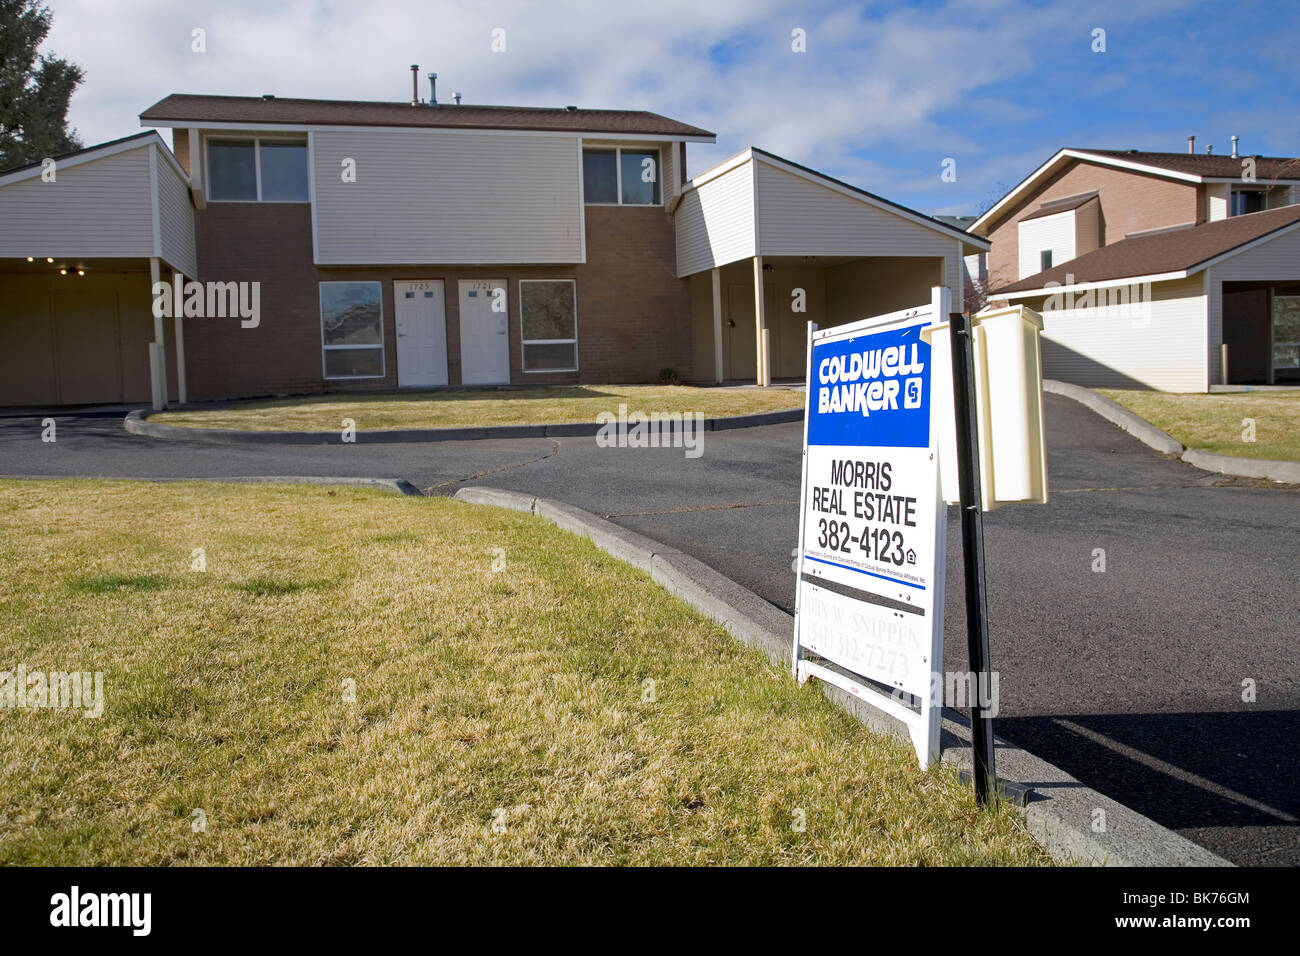 Homes for sale that have been foreclosed on by a local bank, in Bend, Oregon - Stock Image